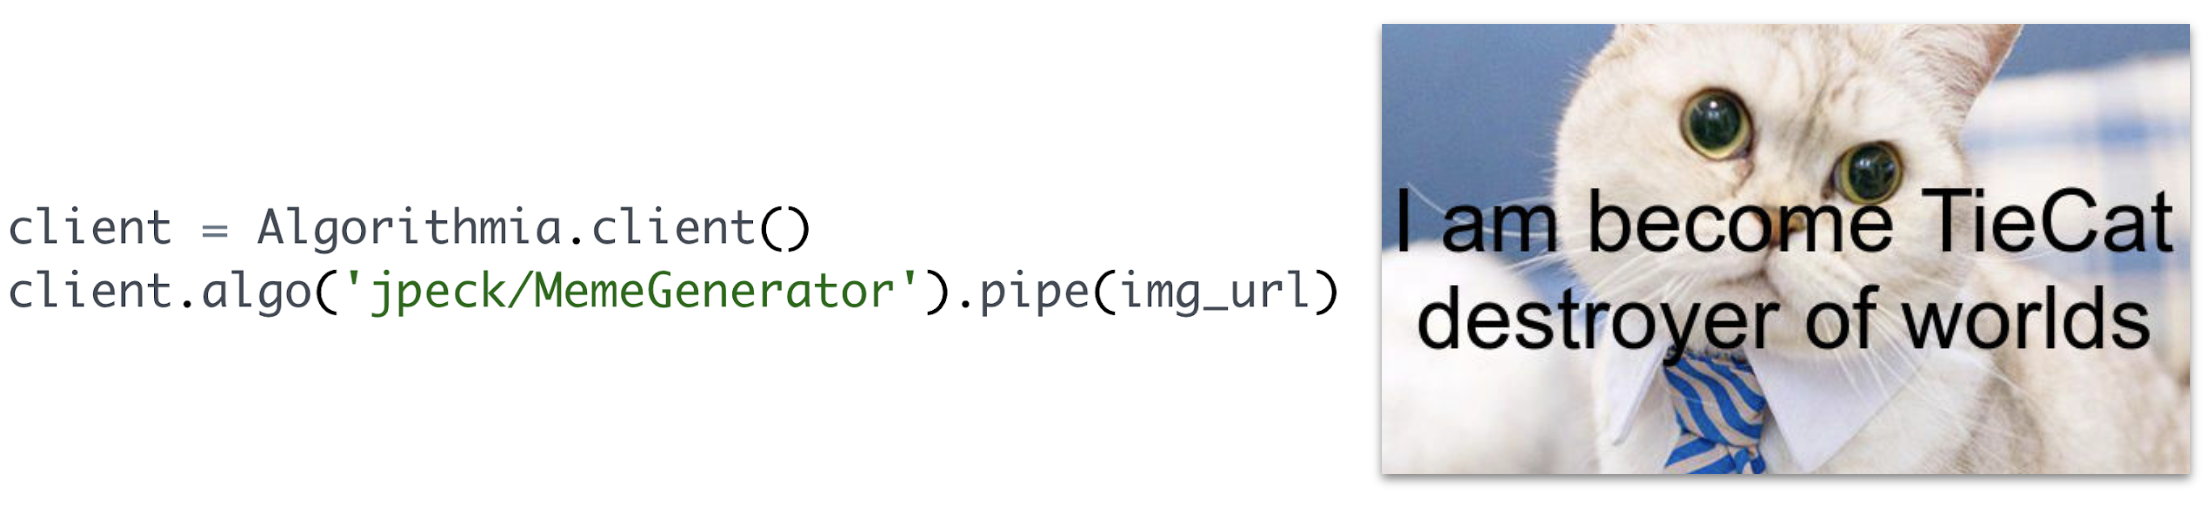 making pipelines available for use by others